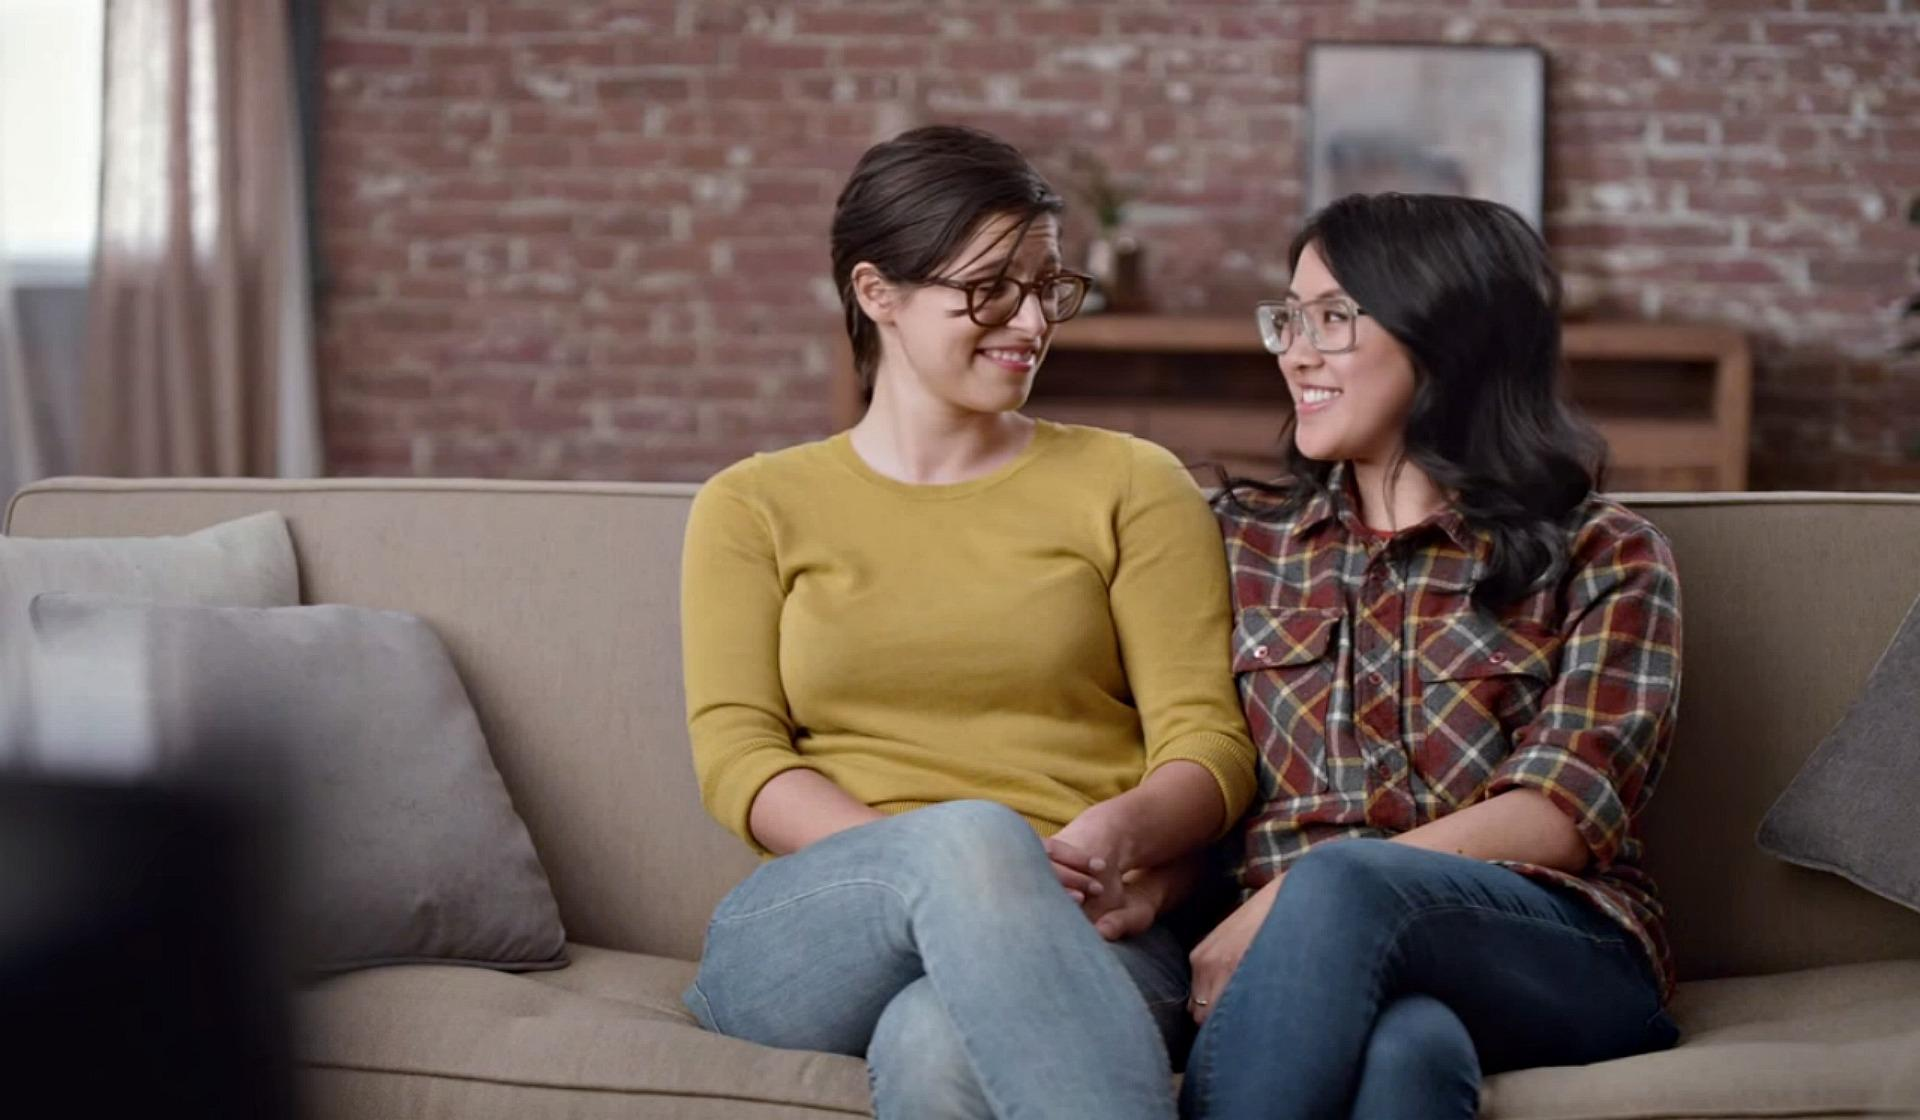 the-new-hallmark-ad-features-adorable-lesbian-couple